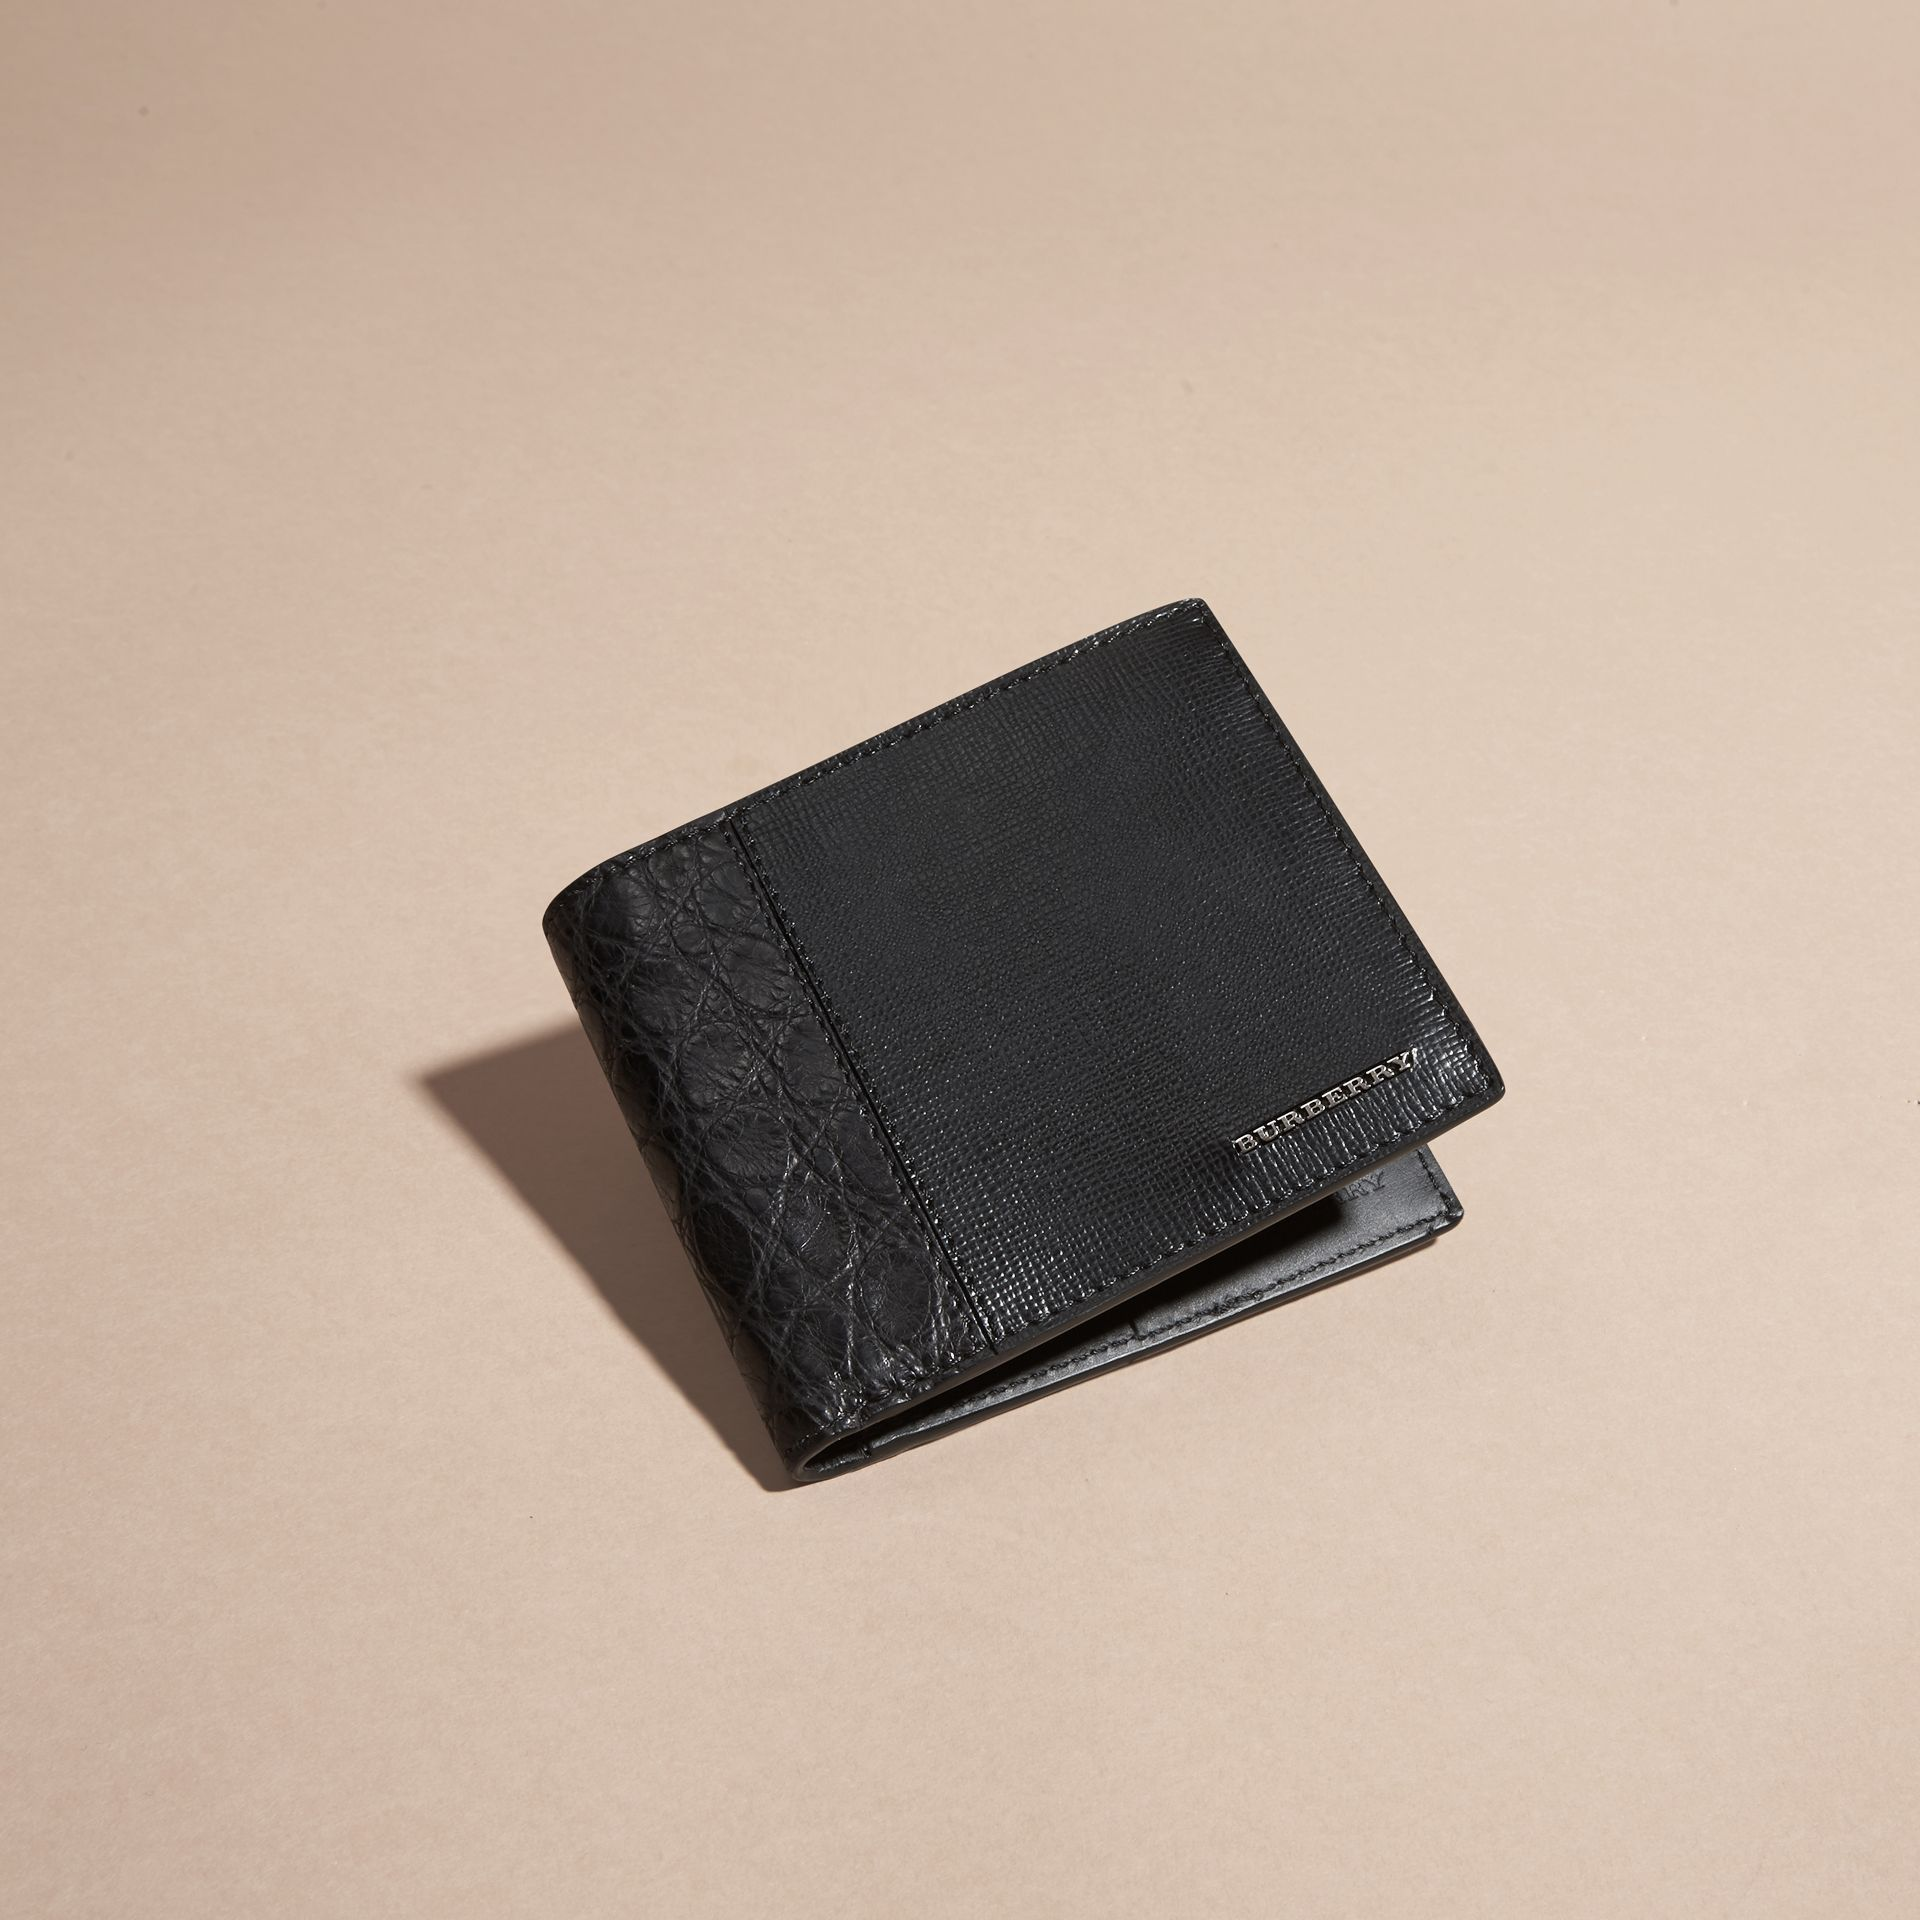 Leather and Alligator International Bifold Wallet in Black - Men | Burberry - gallery image 3